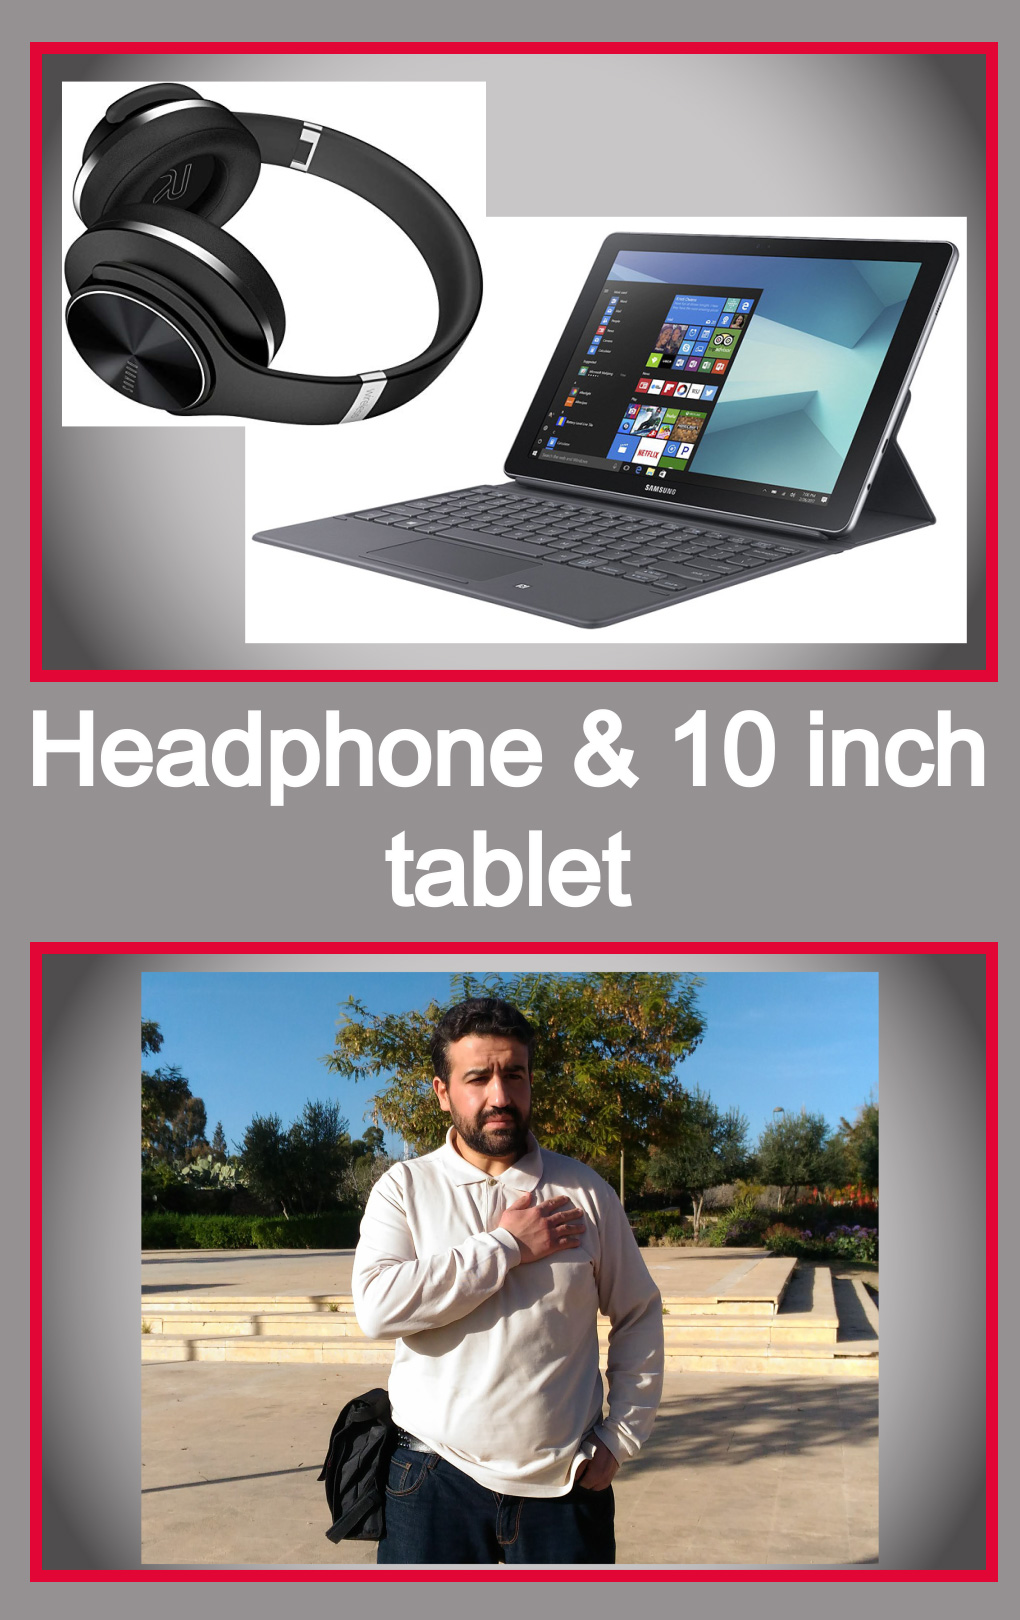 D:\professional work\My businesses\computing devices accessories\unismart four in one smartphone accessory\campaign footage\problem part\space saving sling bag\used footage\unismart sling bag3